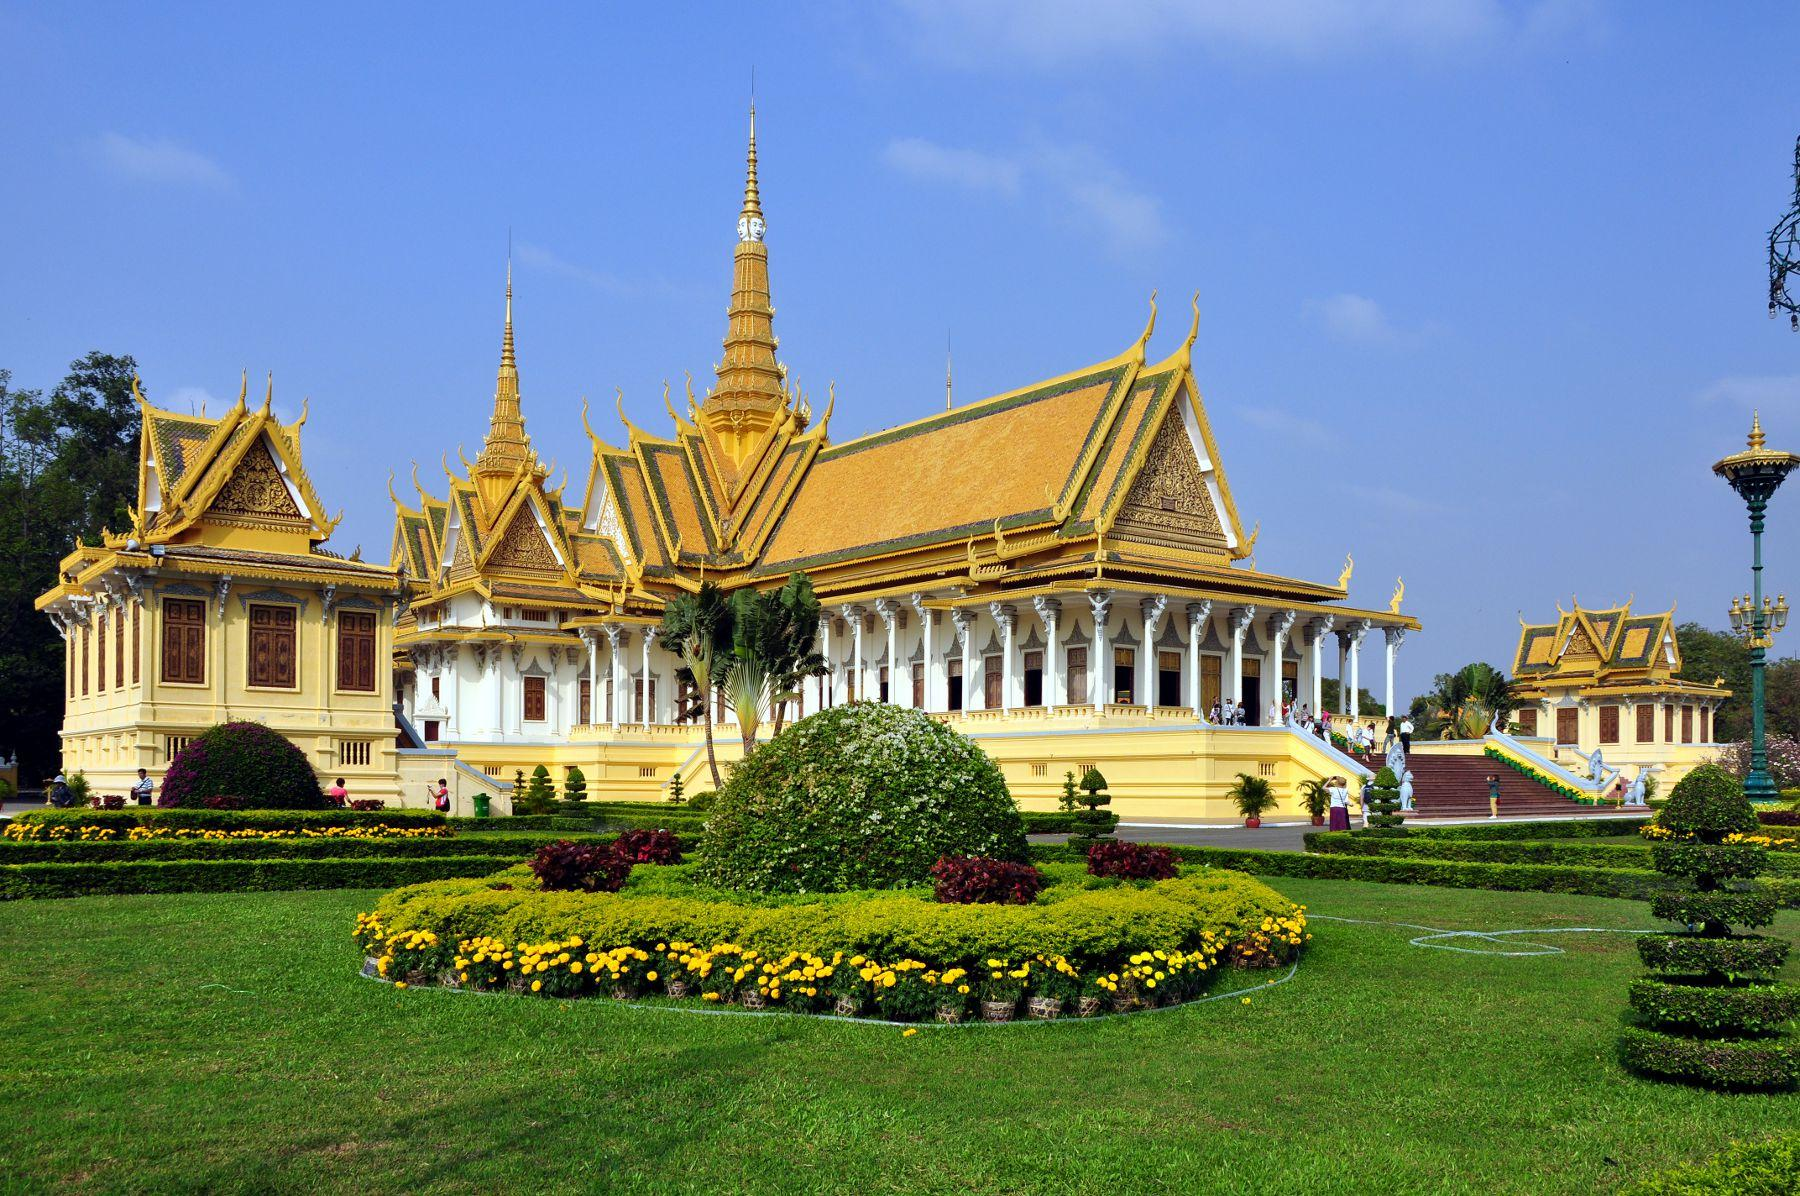 Royal Palace is the most attractive destination in Phnom Penh